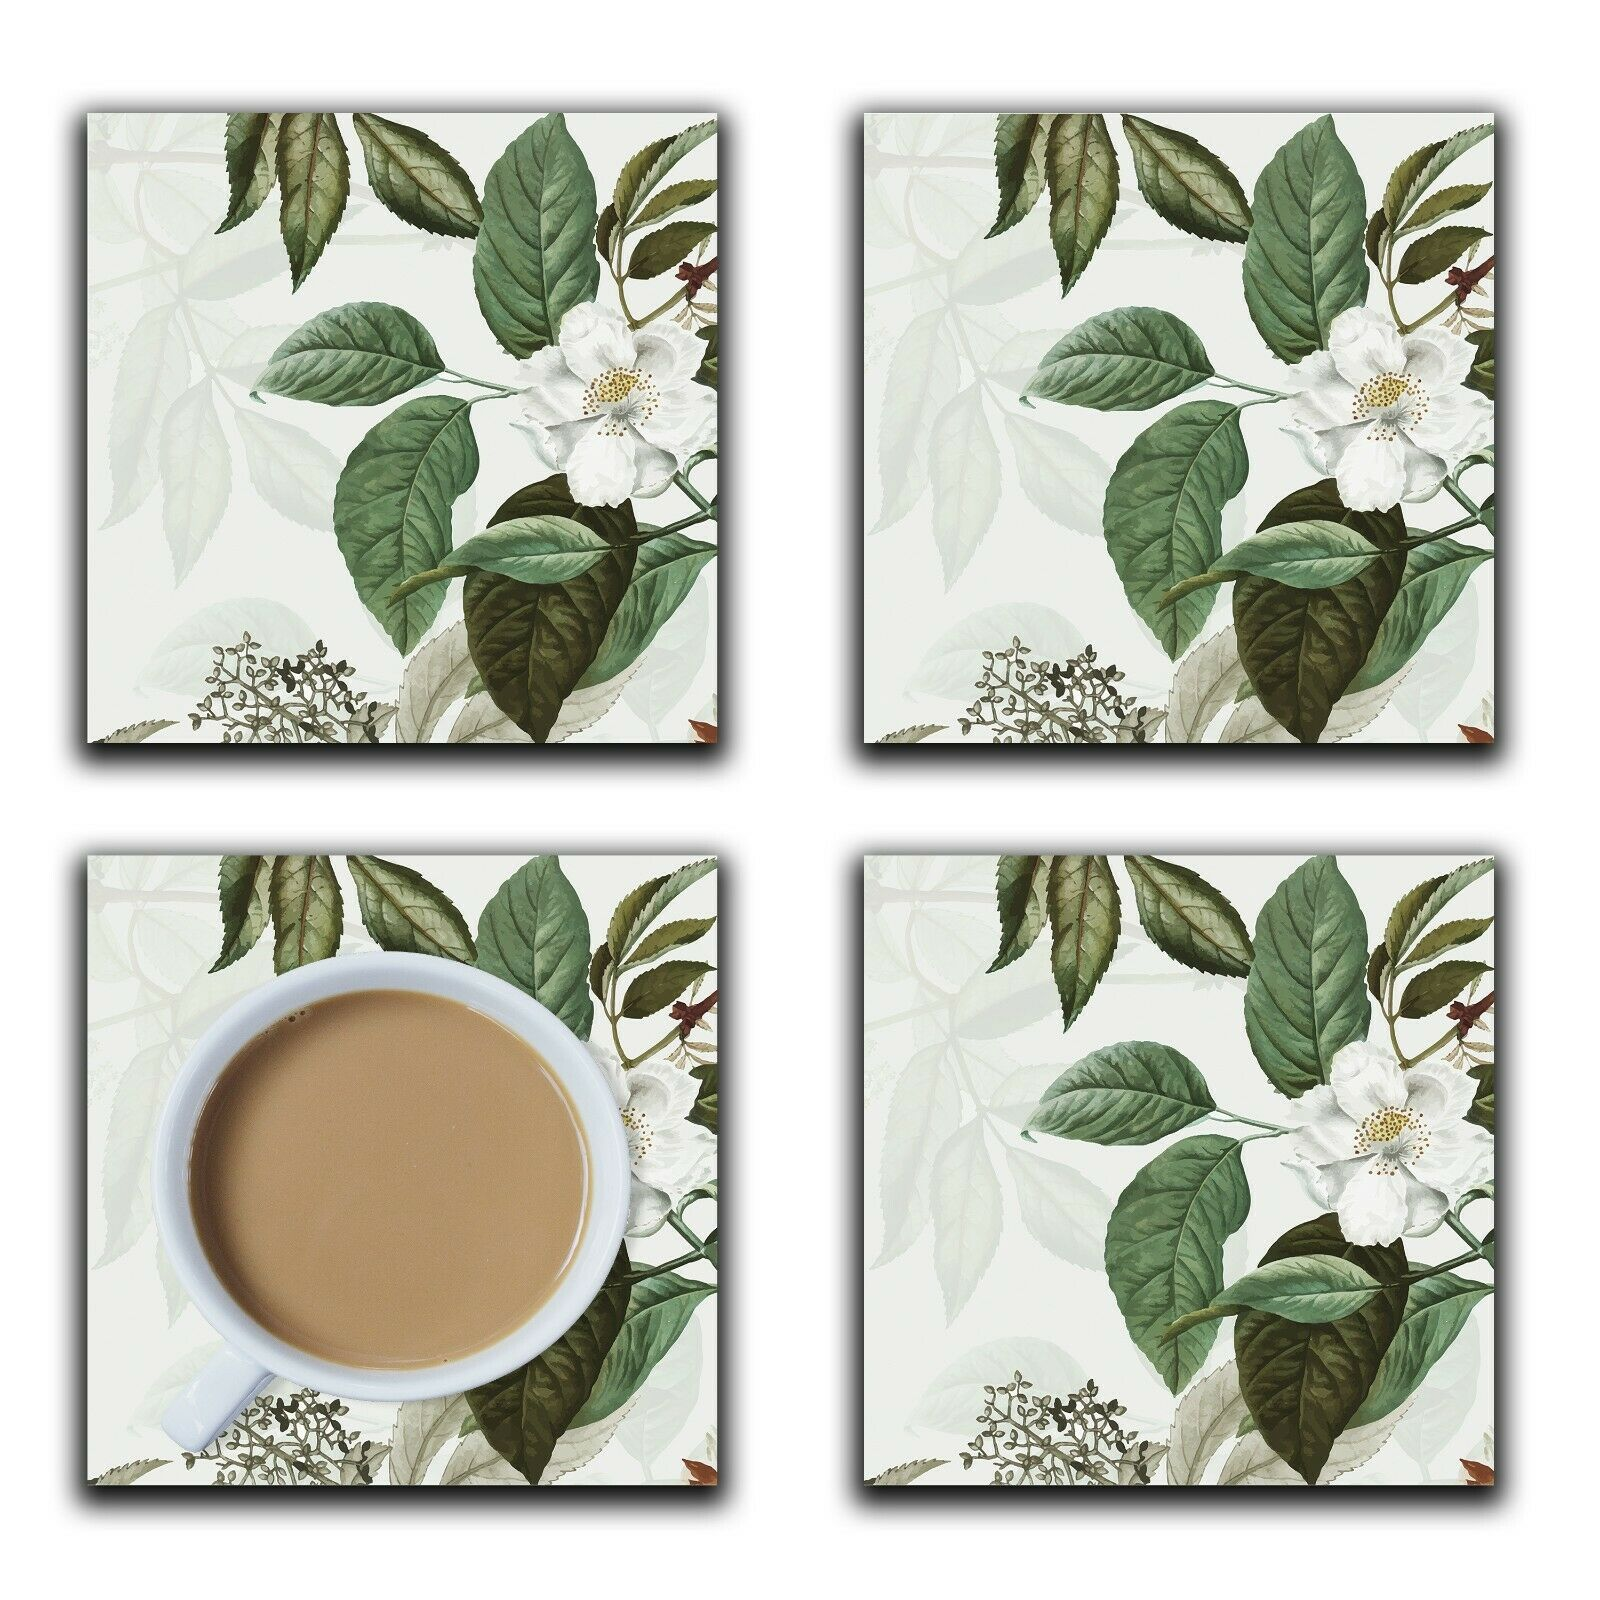 Embossi Printed White Rose Botanical, wood or ceramic tile, set of 4 Coasters